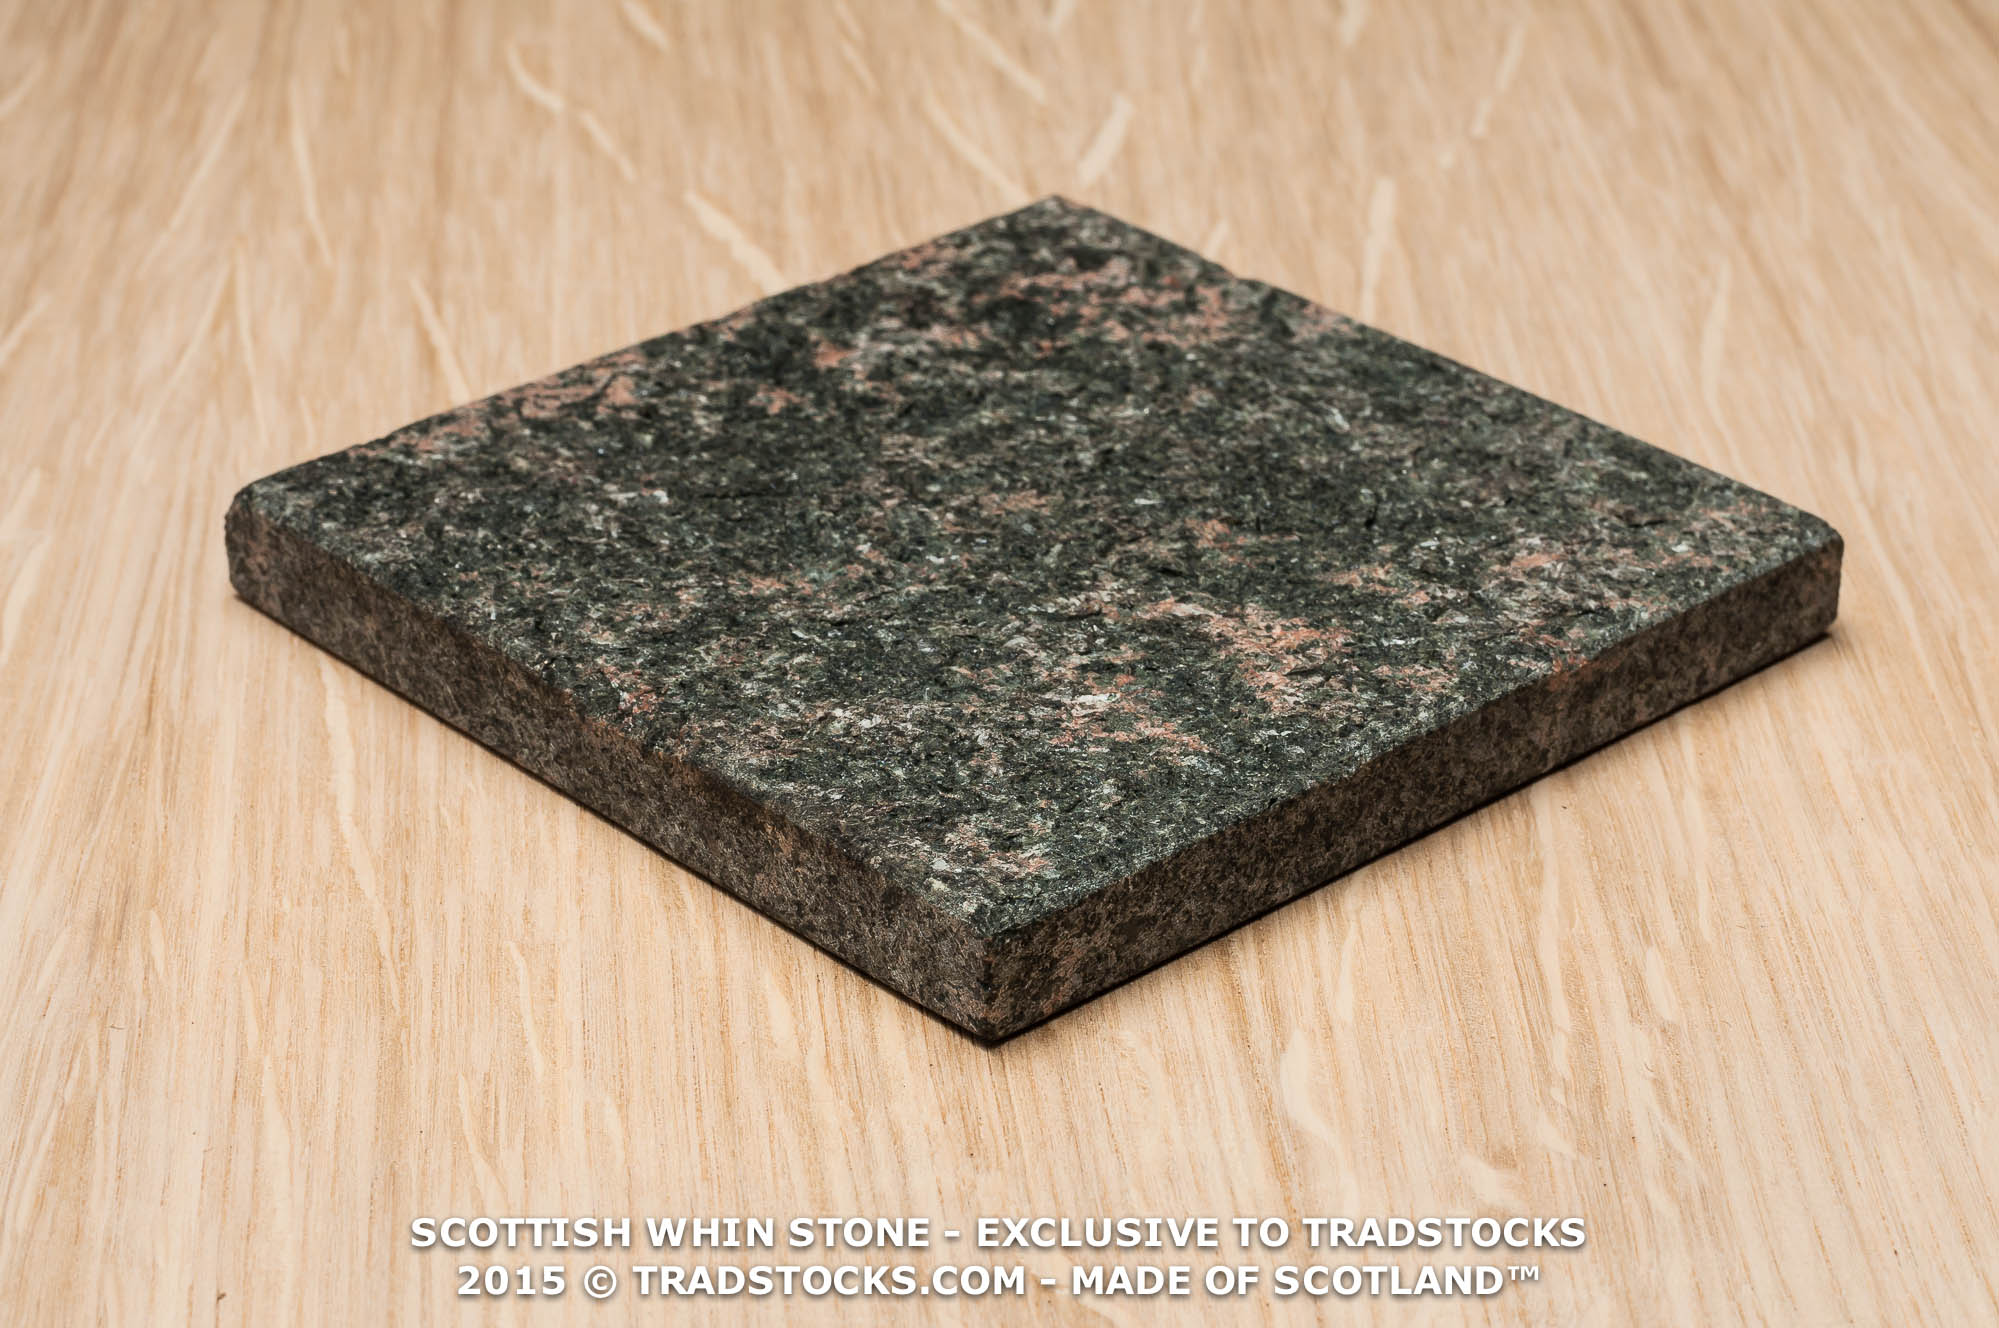 SCOTTISH.WHINSTONE.WHIN.STONE.SUPPLIERS.PROVIDERS.BUY.SAMPLES.BUILDING.MASONRY.QUARRY.QUARRIES.DIRECT.ONLINE.PRICE.COST.HOW.MUCH.TRADSTOCKS.STIRLING.CENTRAL.SCOTLAND.NATURAL.SANDSTONE.TRADITIONAL-4824.jpg